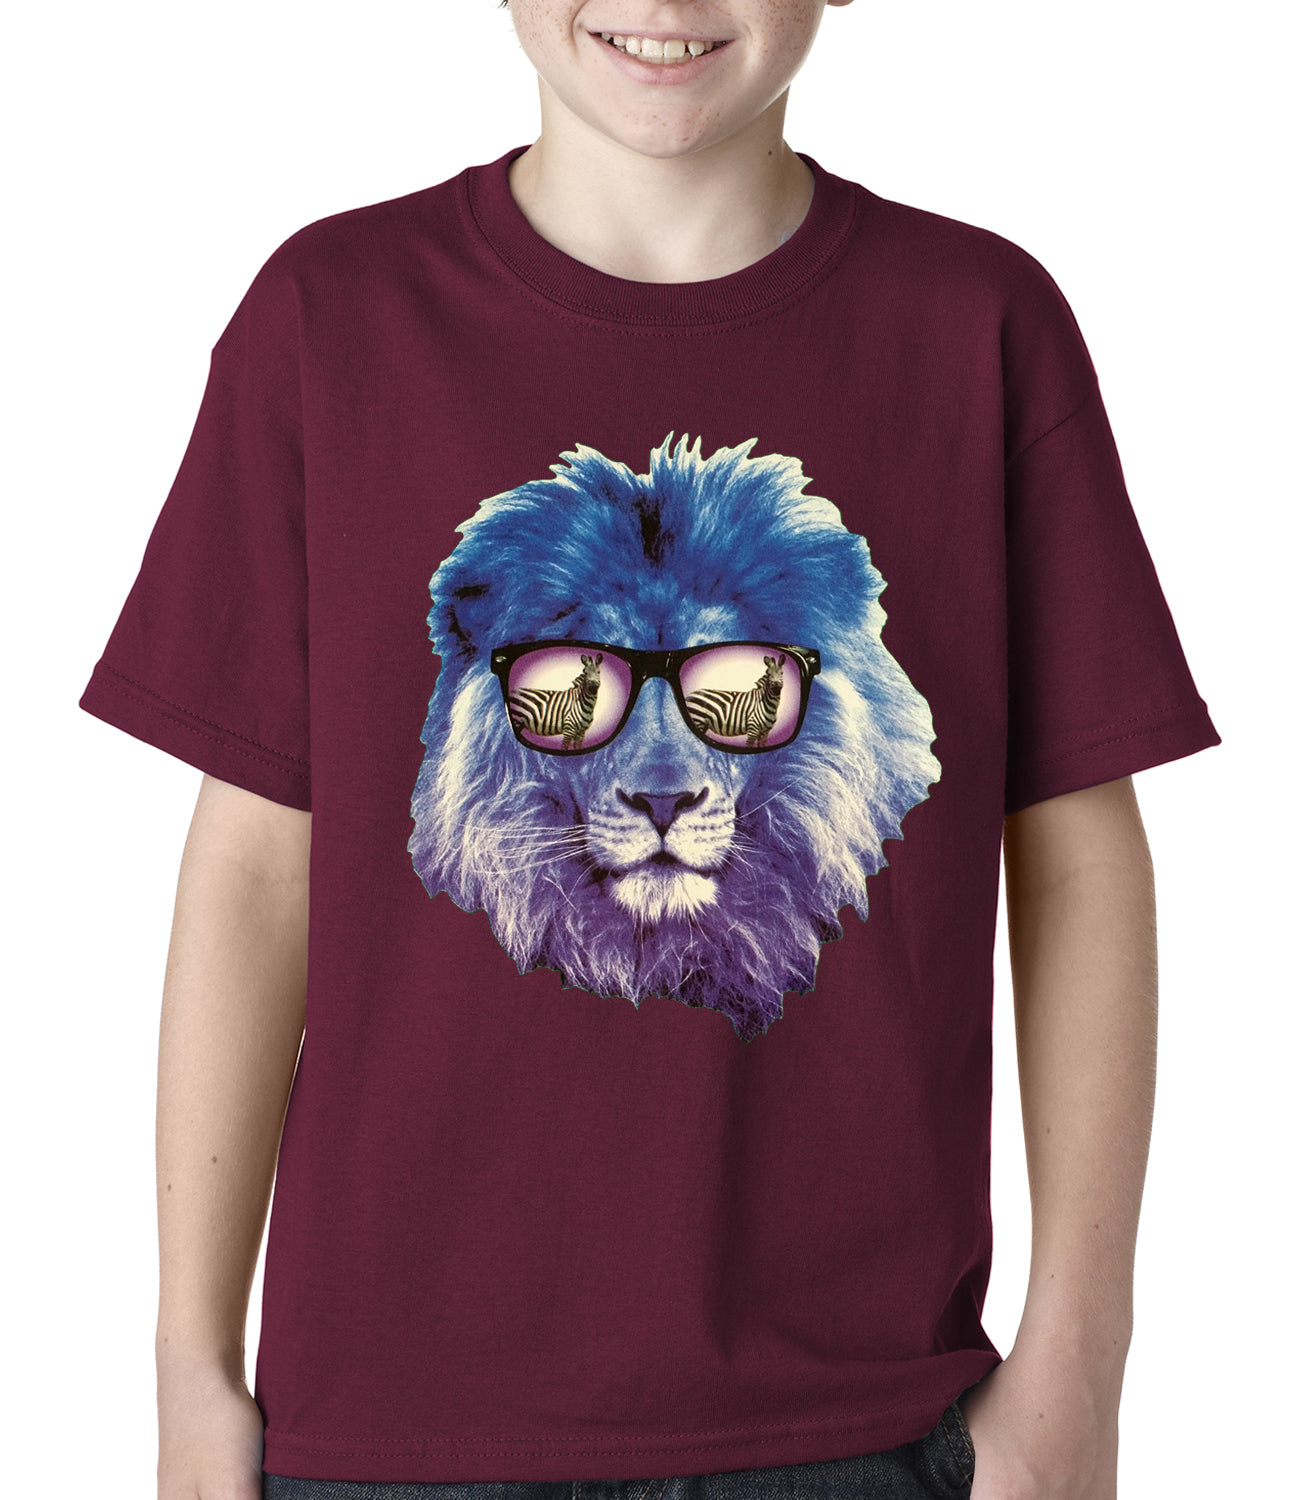 Lion Wearing Sunglasses Looking at a Zebra Kids T-shirt